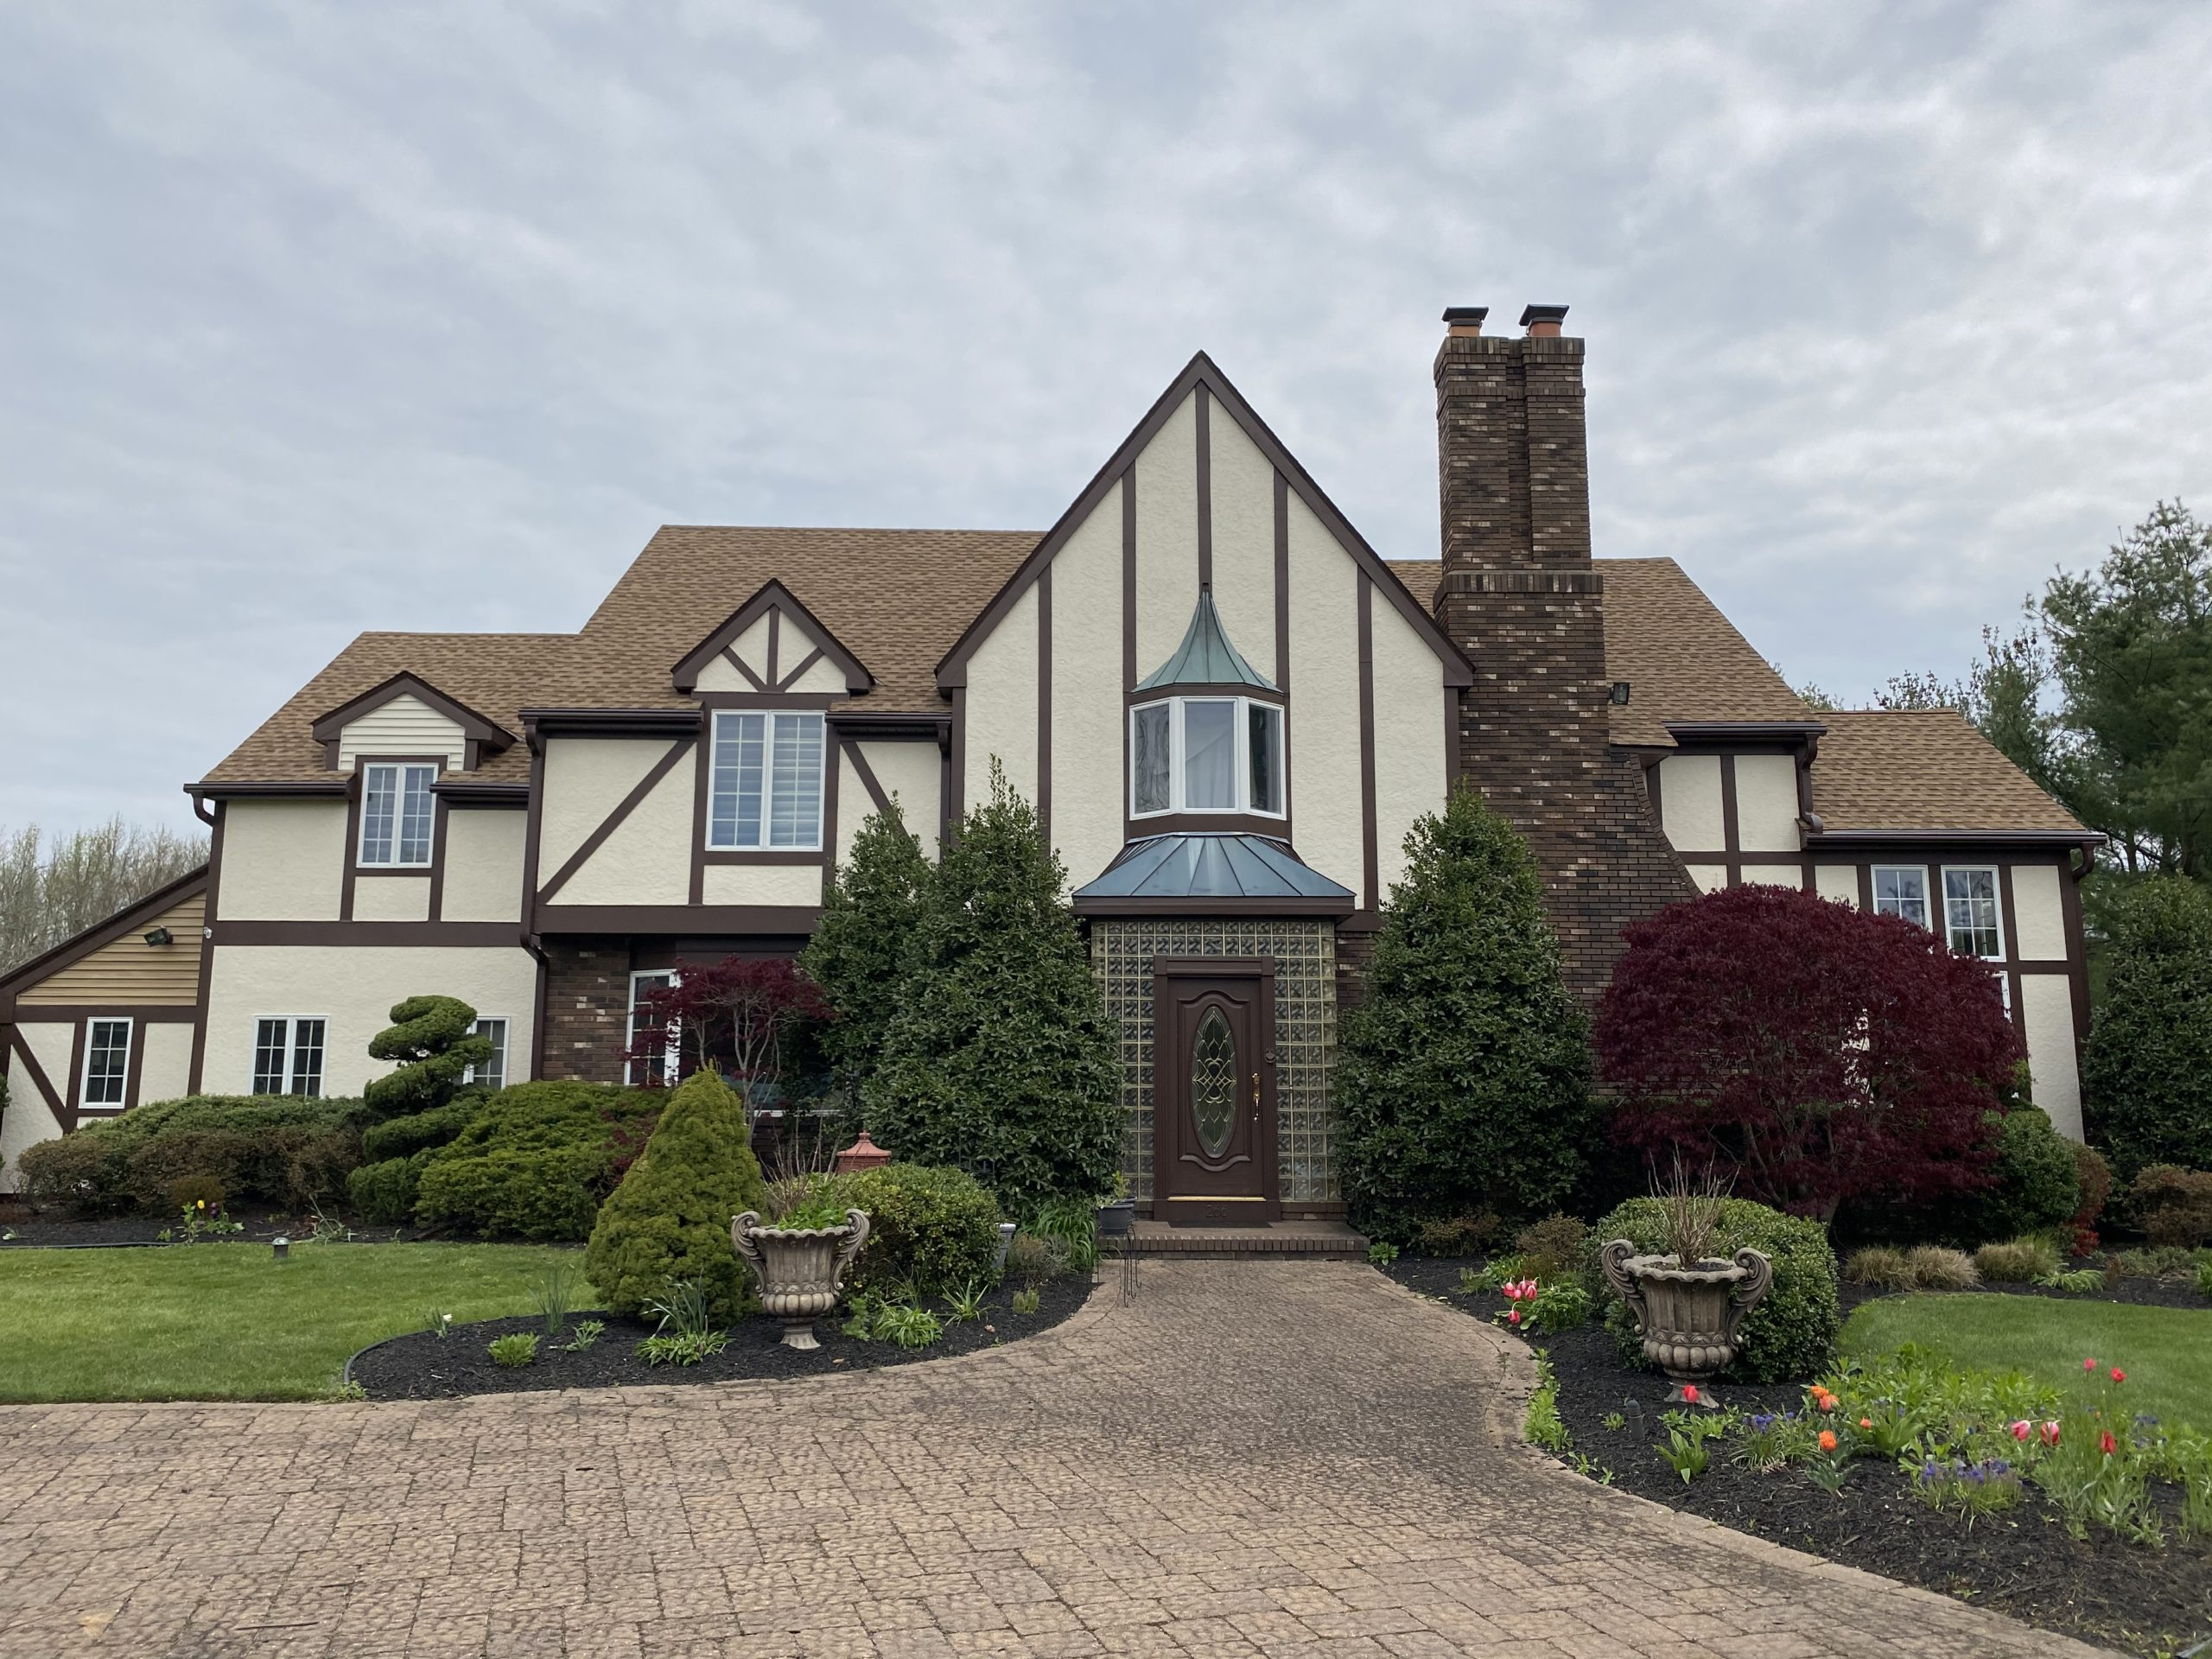 DDS Completes Painting of a Home in Vineland New Jersey